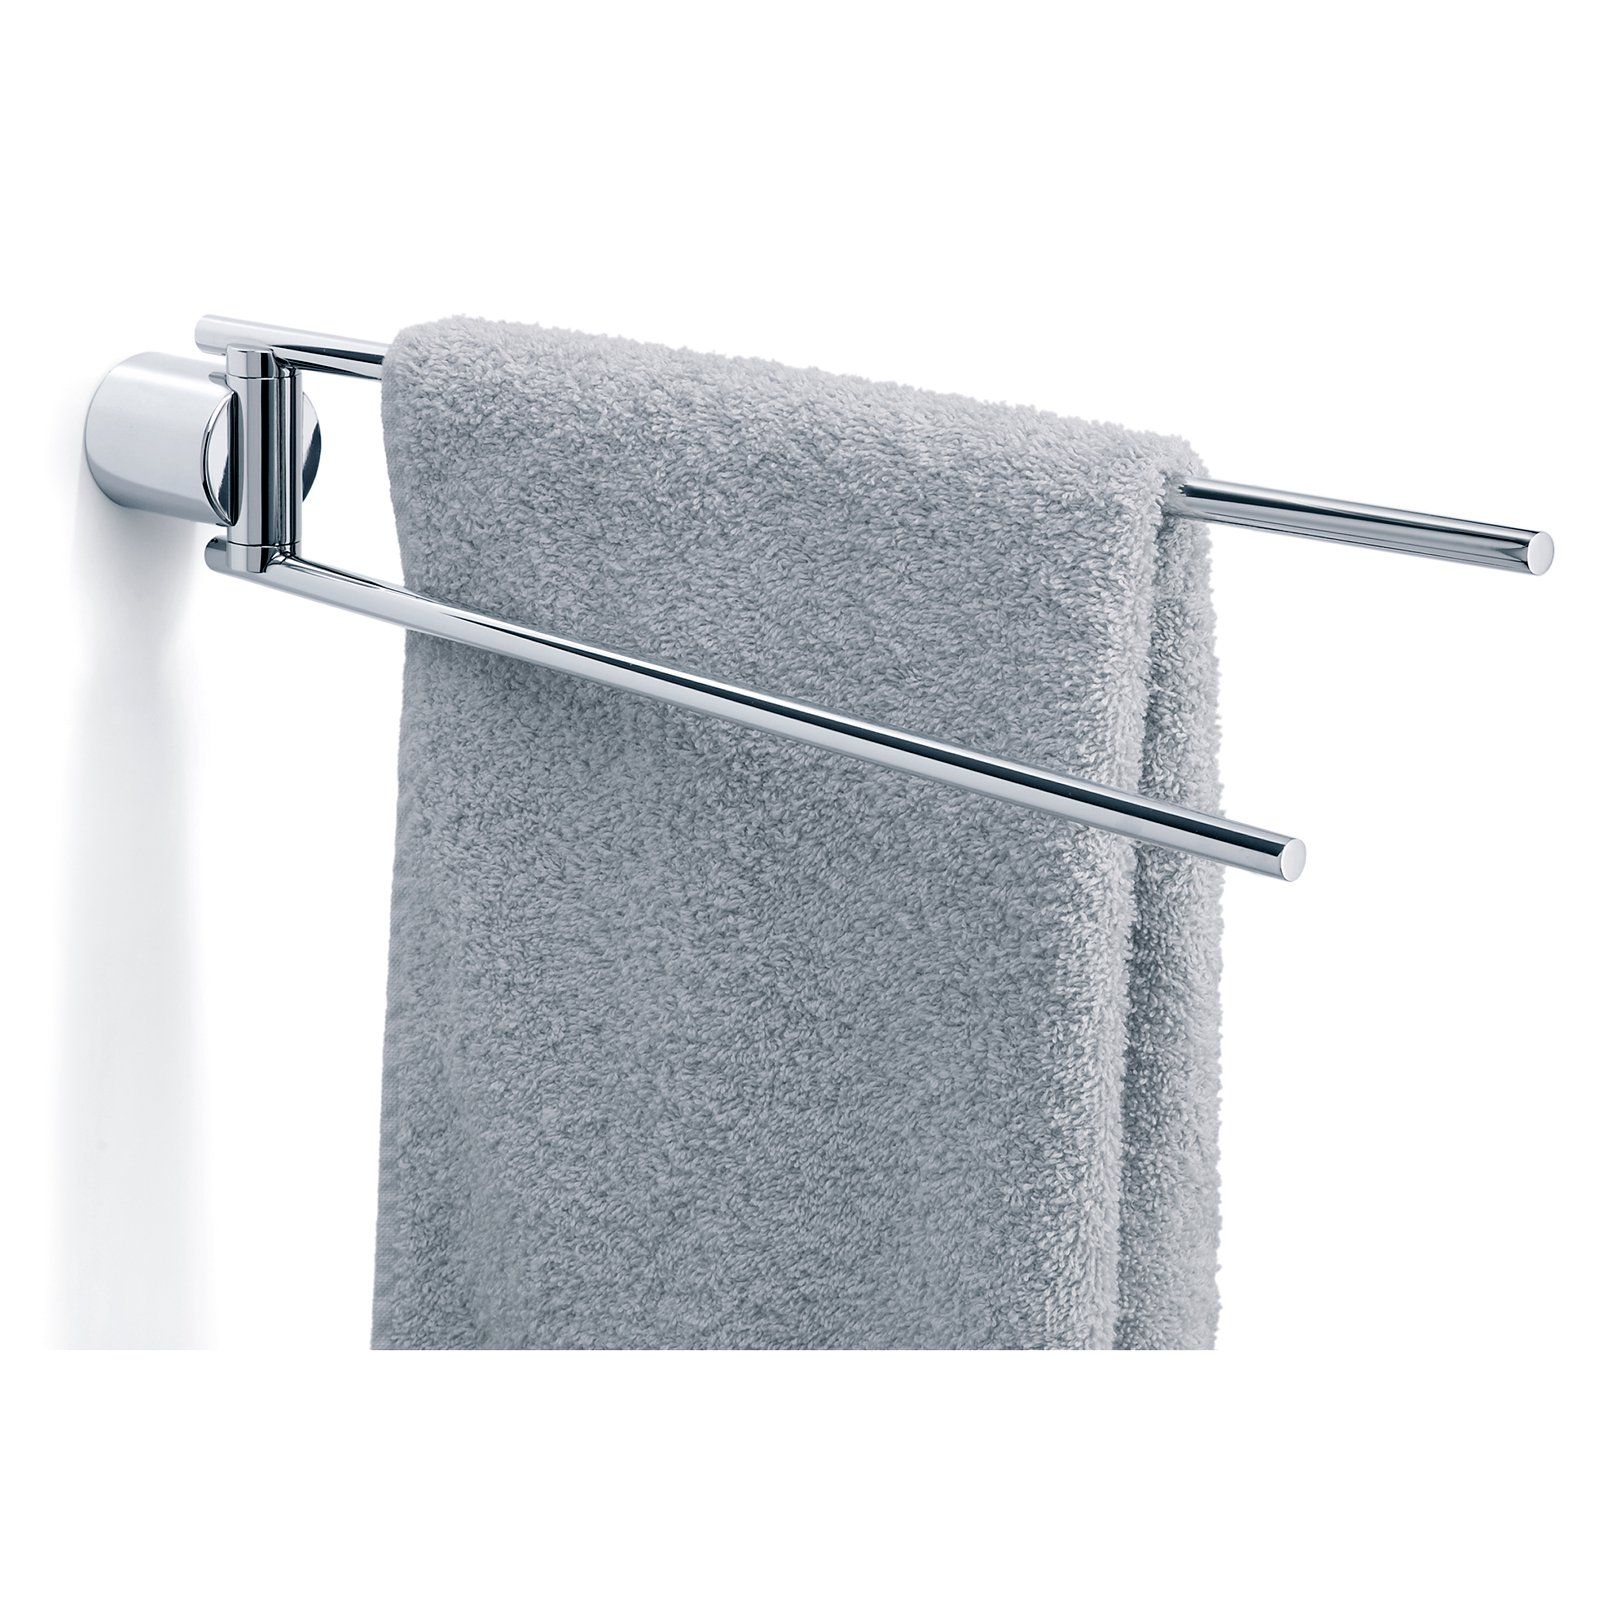 Duo Towel & Magazine Rack - 68570 | Products | Pinterest | Towels ...